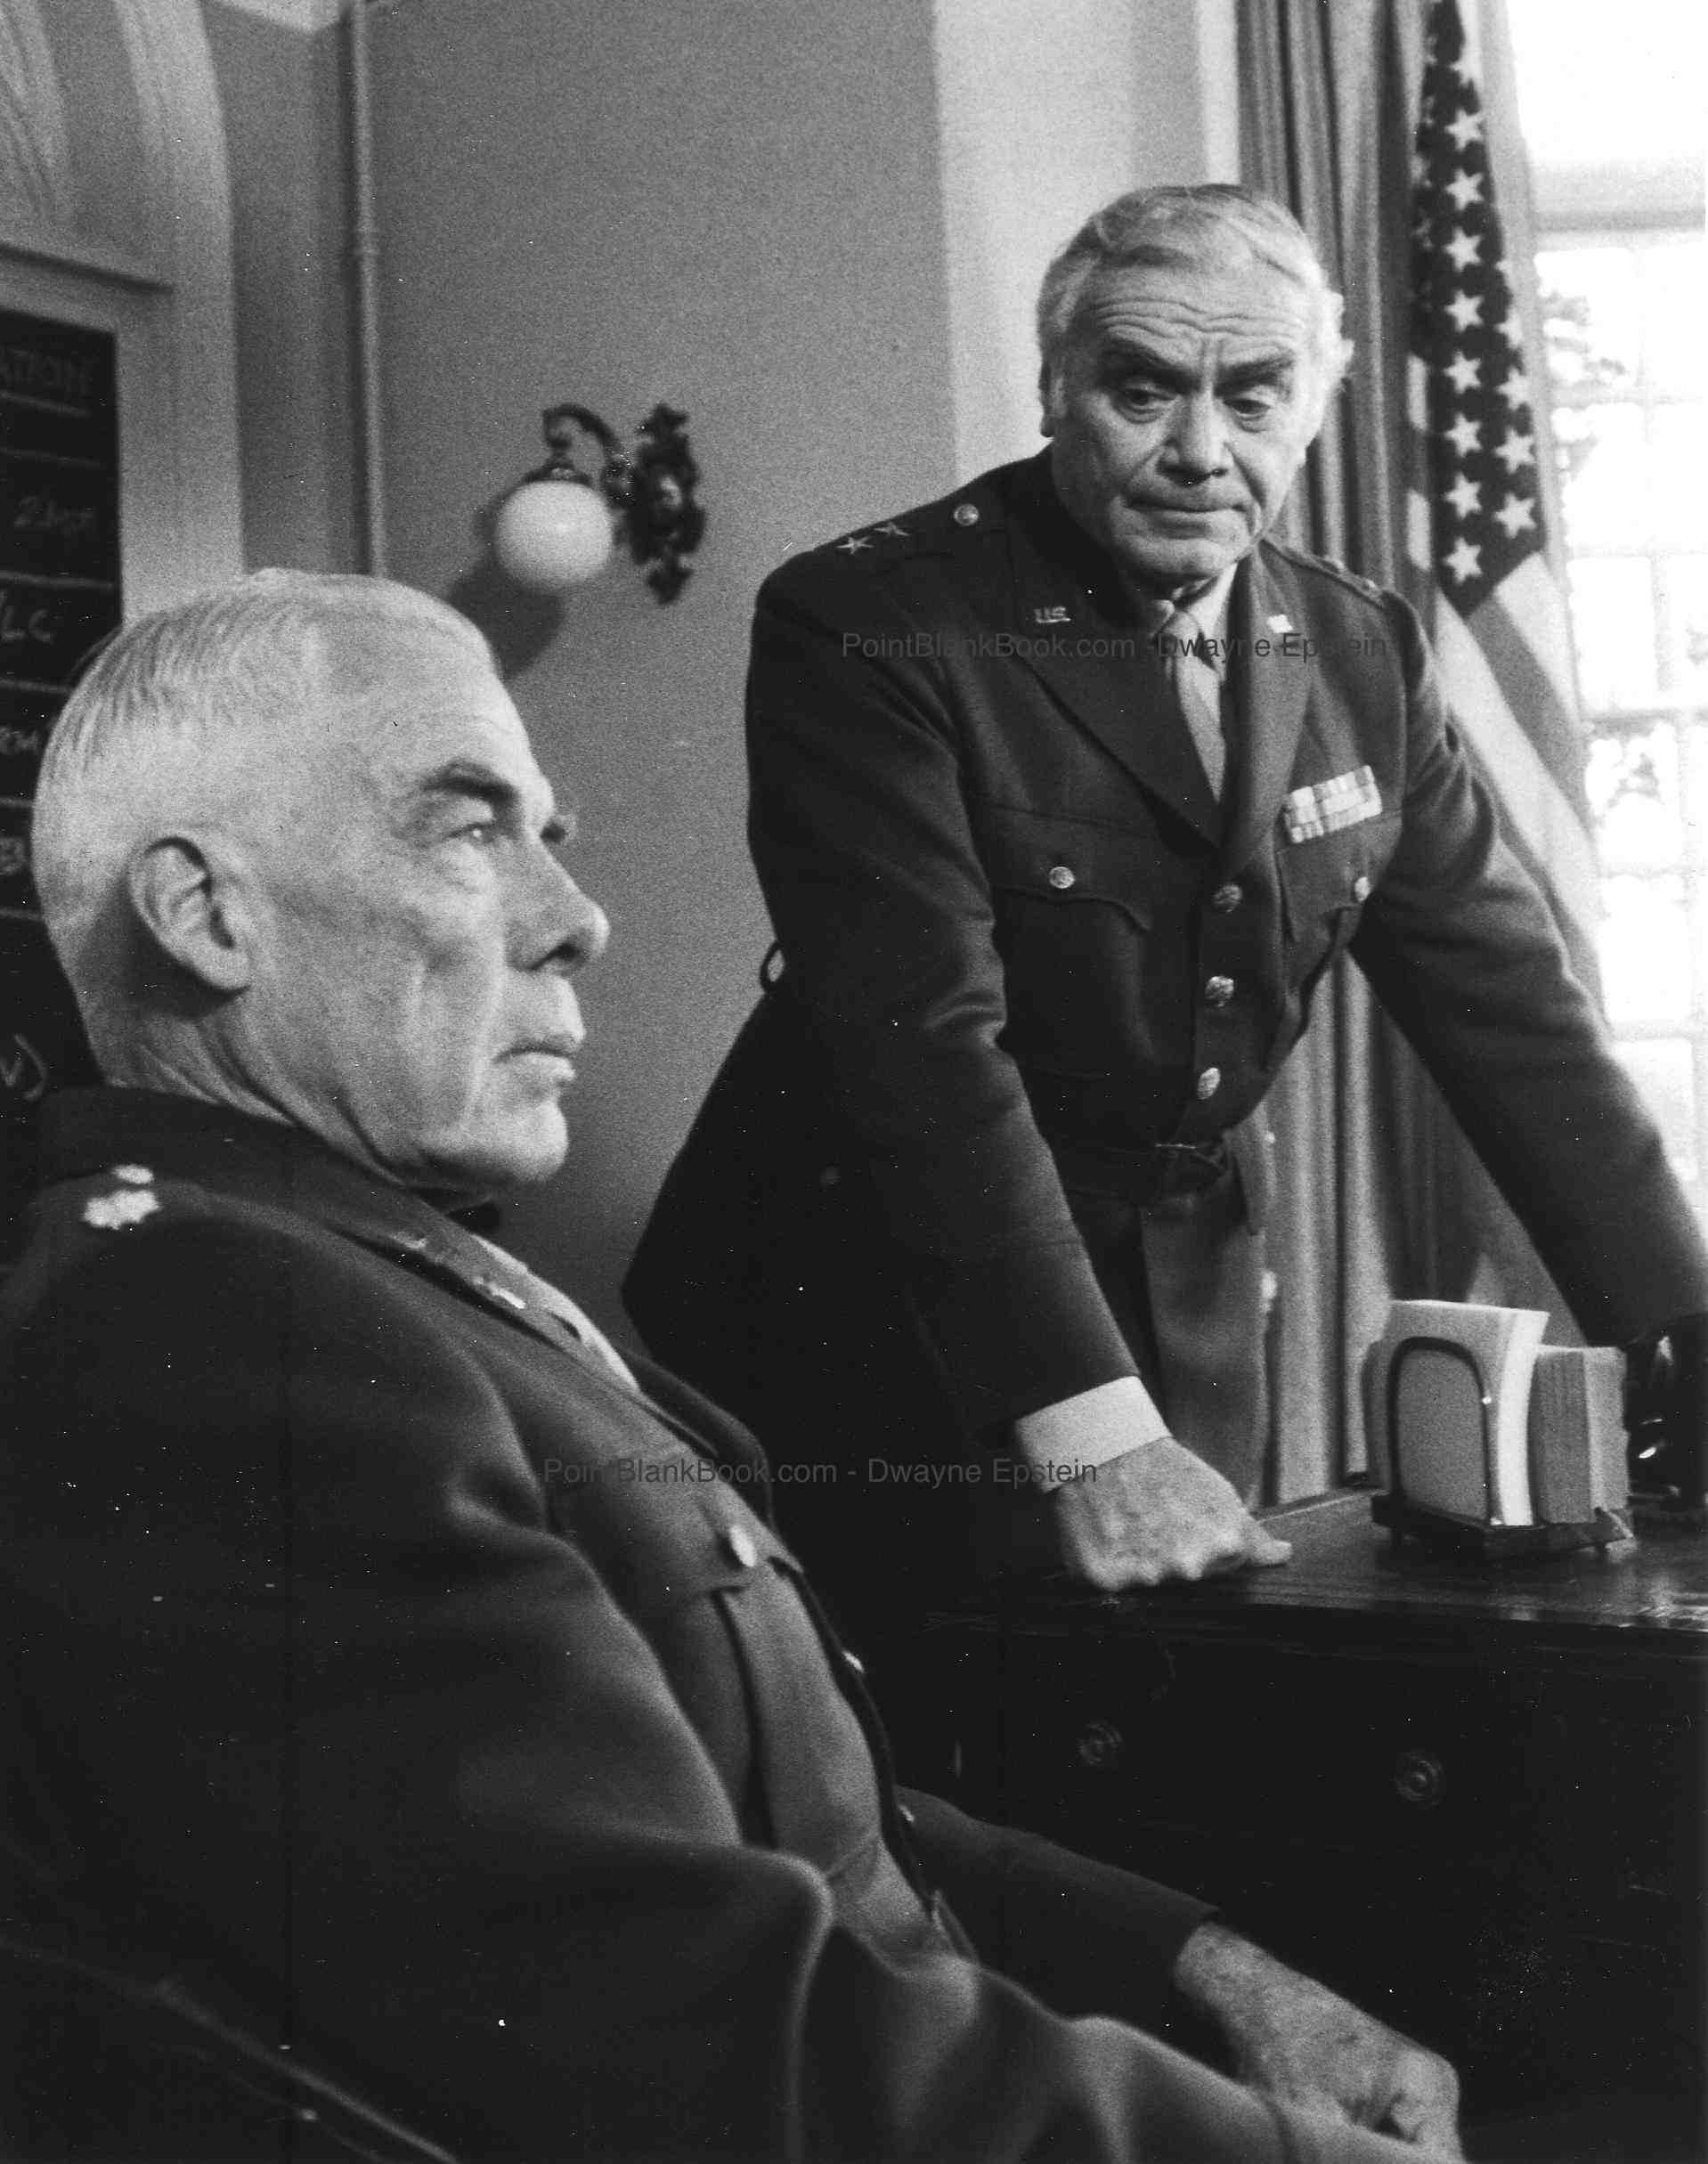 Lee Marvin (left), looking a wax museum from the Hollywood Museum gets his orders from General Ernest Borgnine